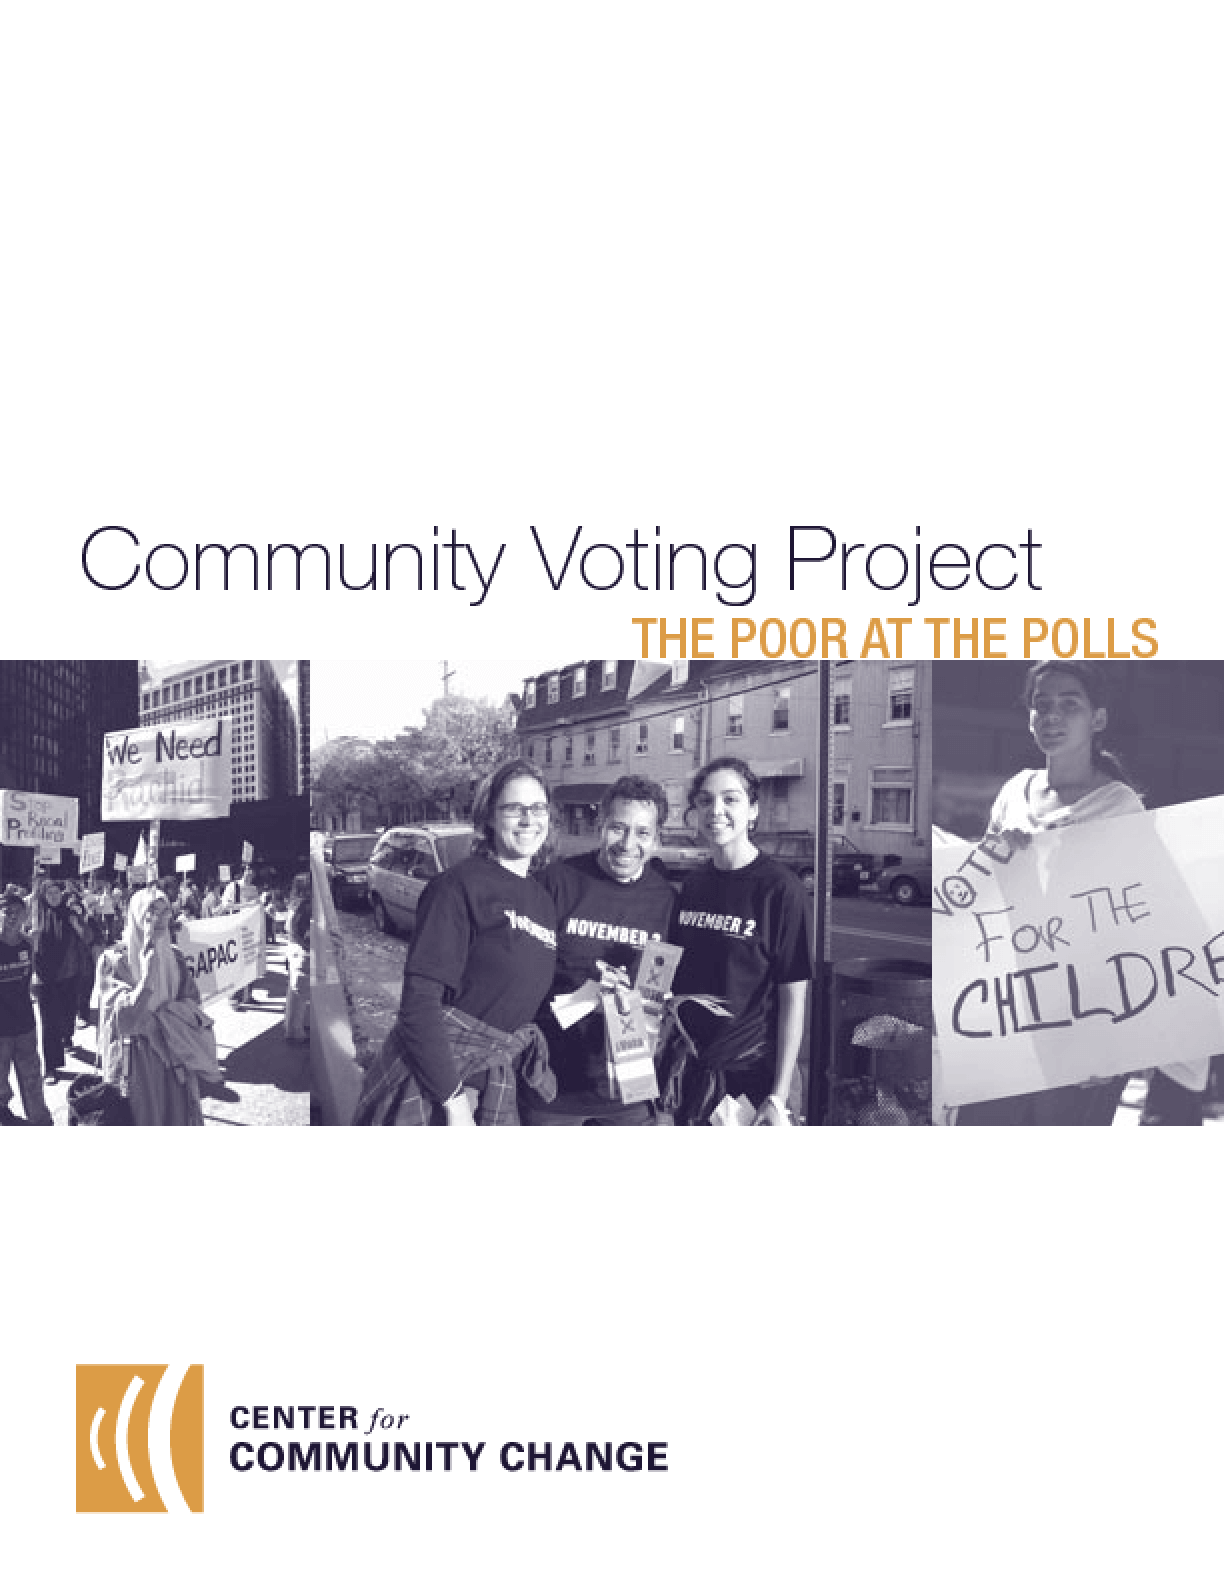 The Community Voting Project: The Poor at the Polls